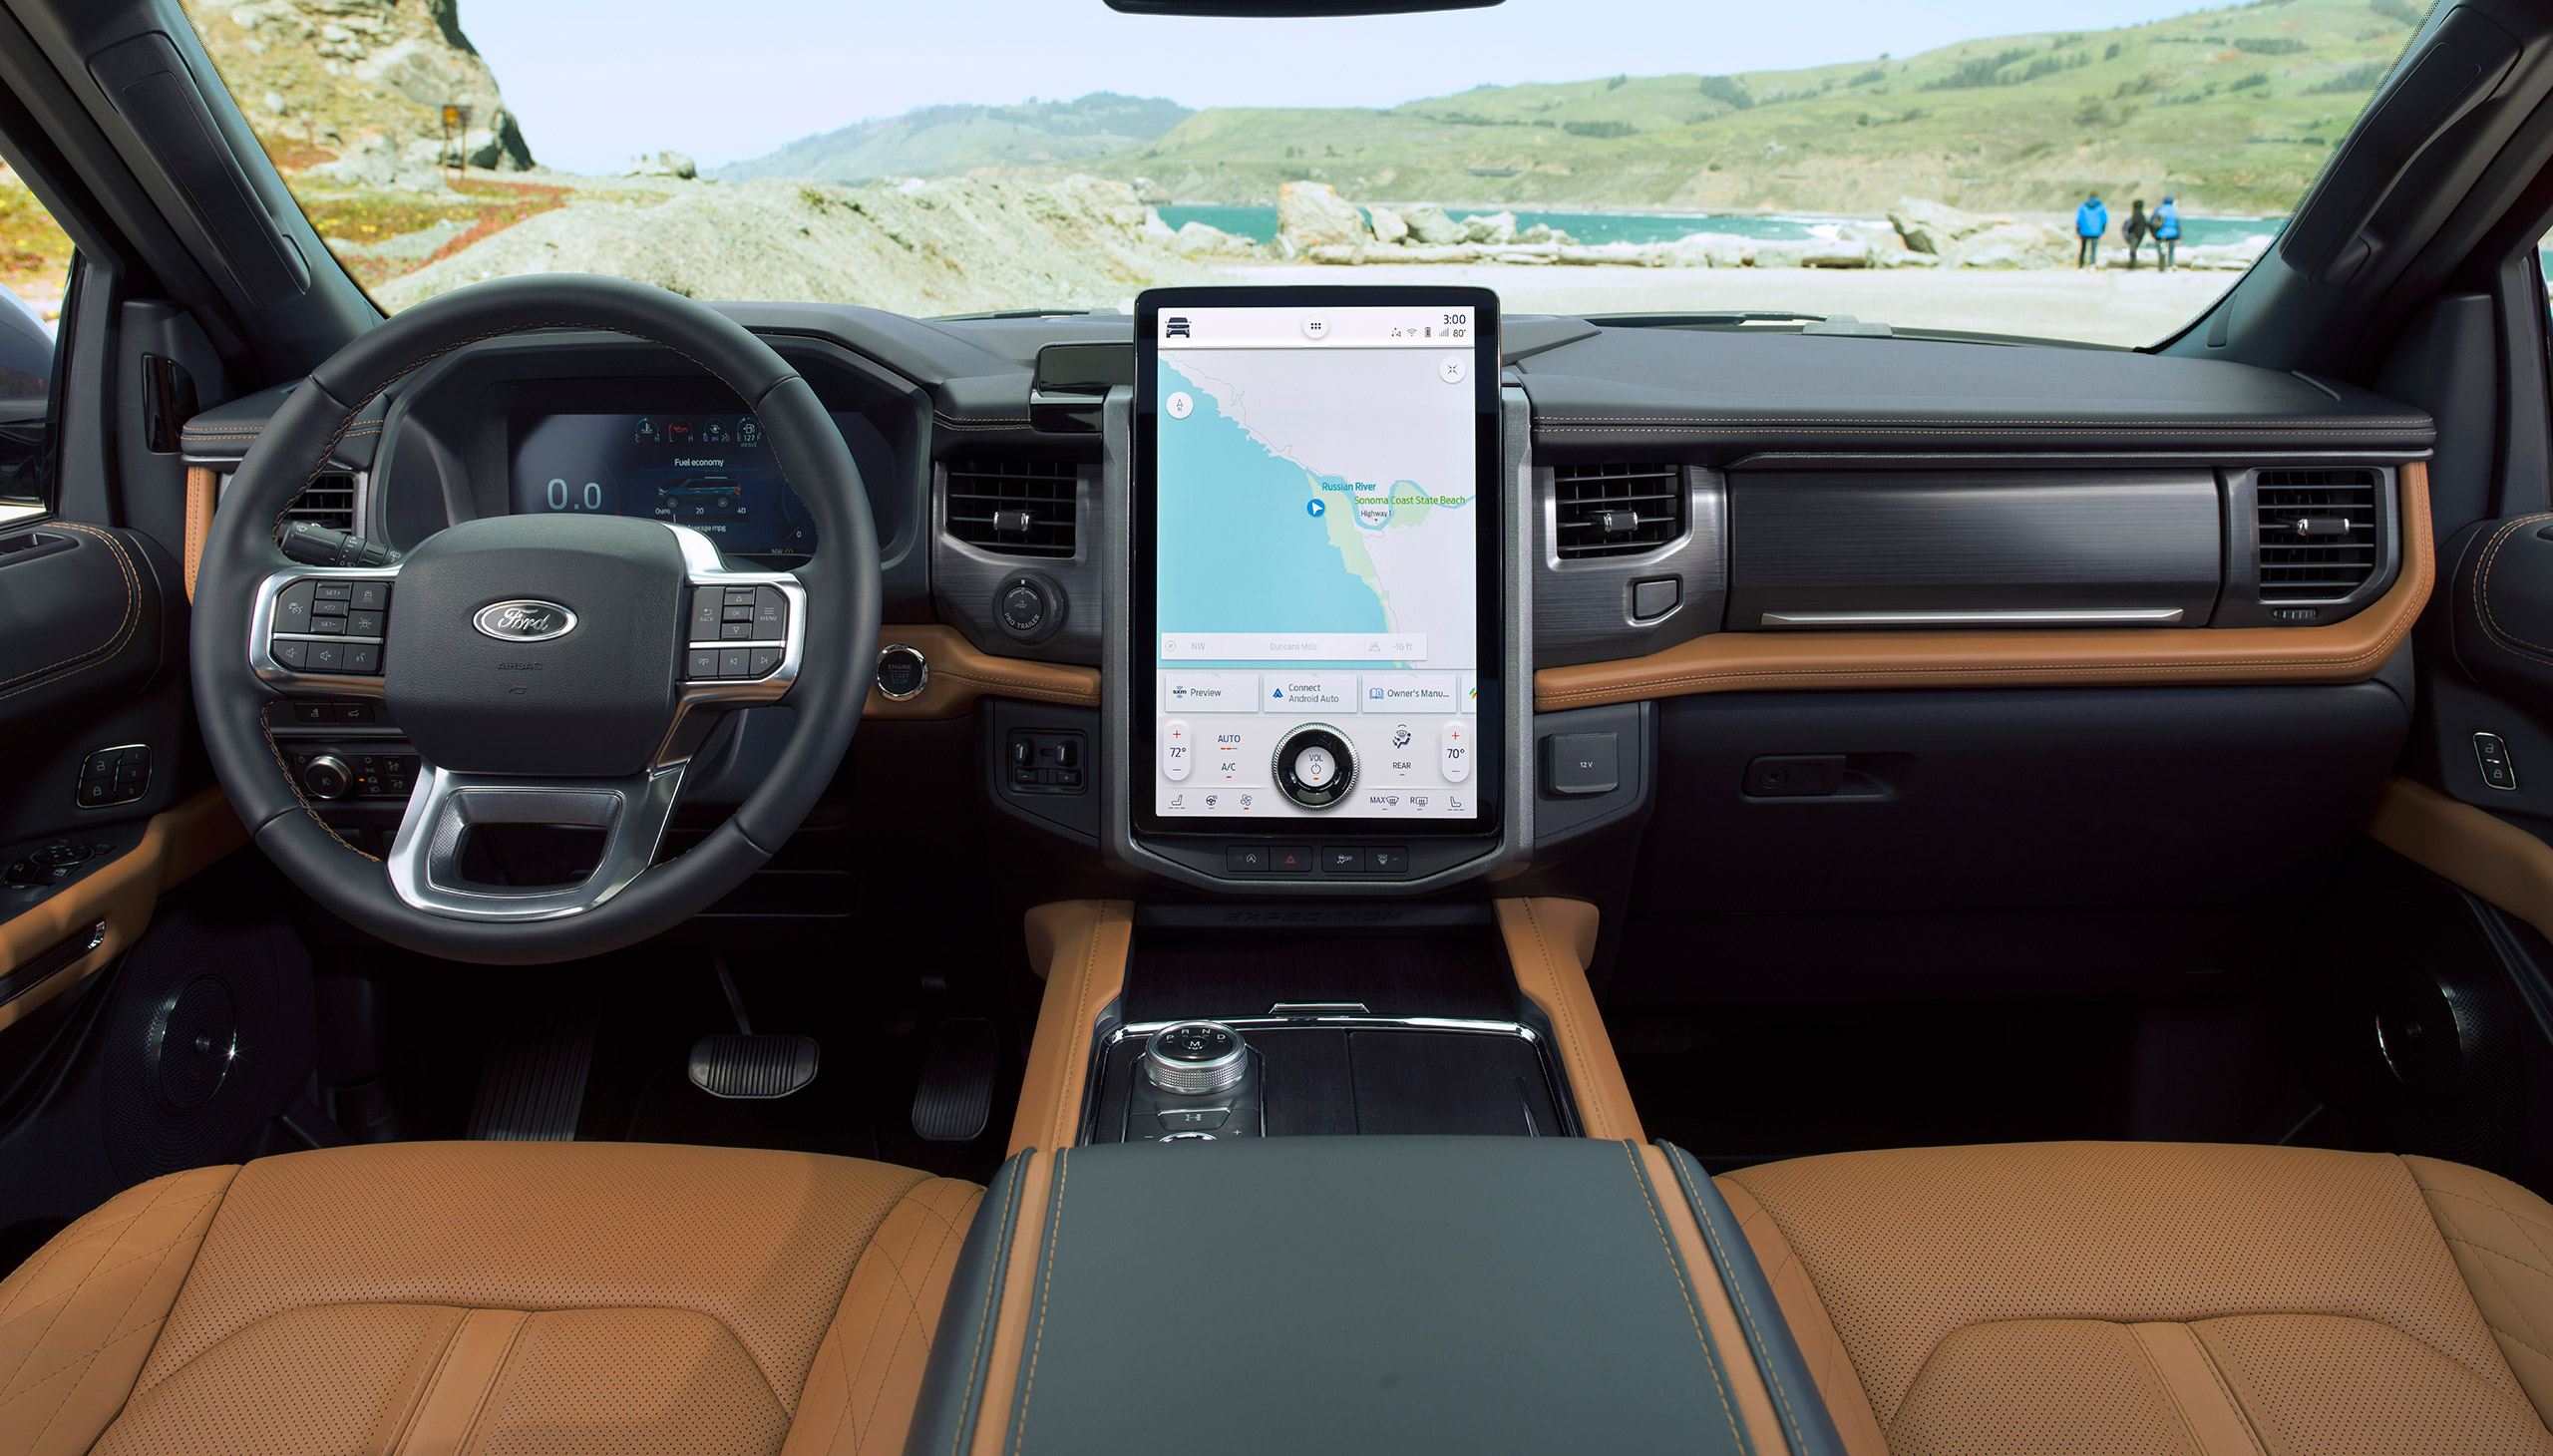 2022 Ford Expedition Limited Interior full width